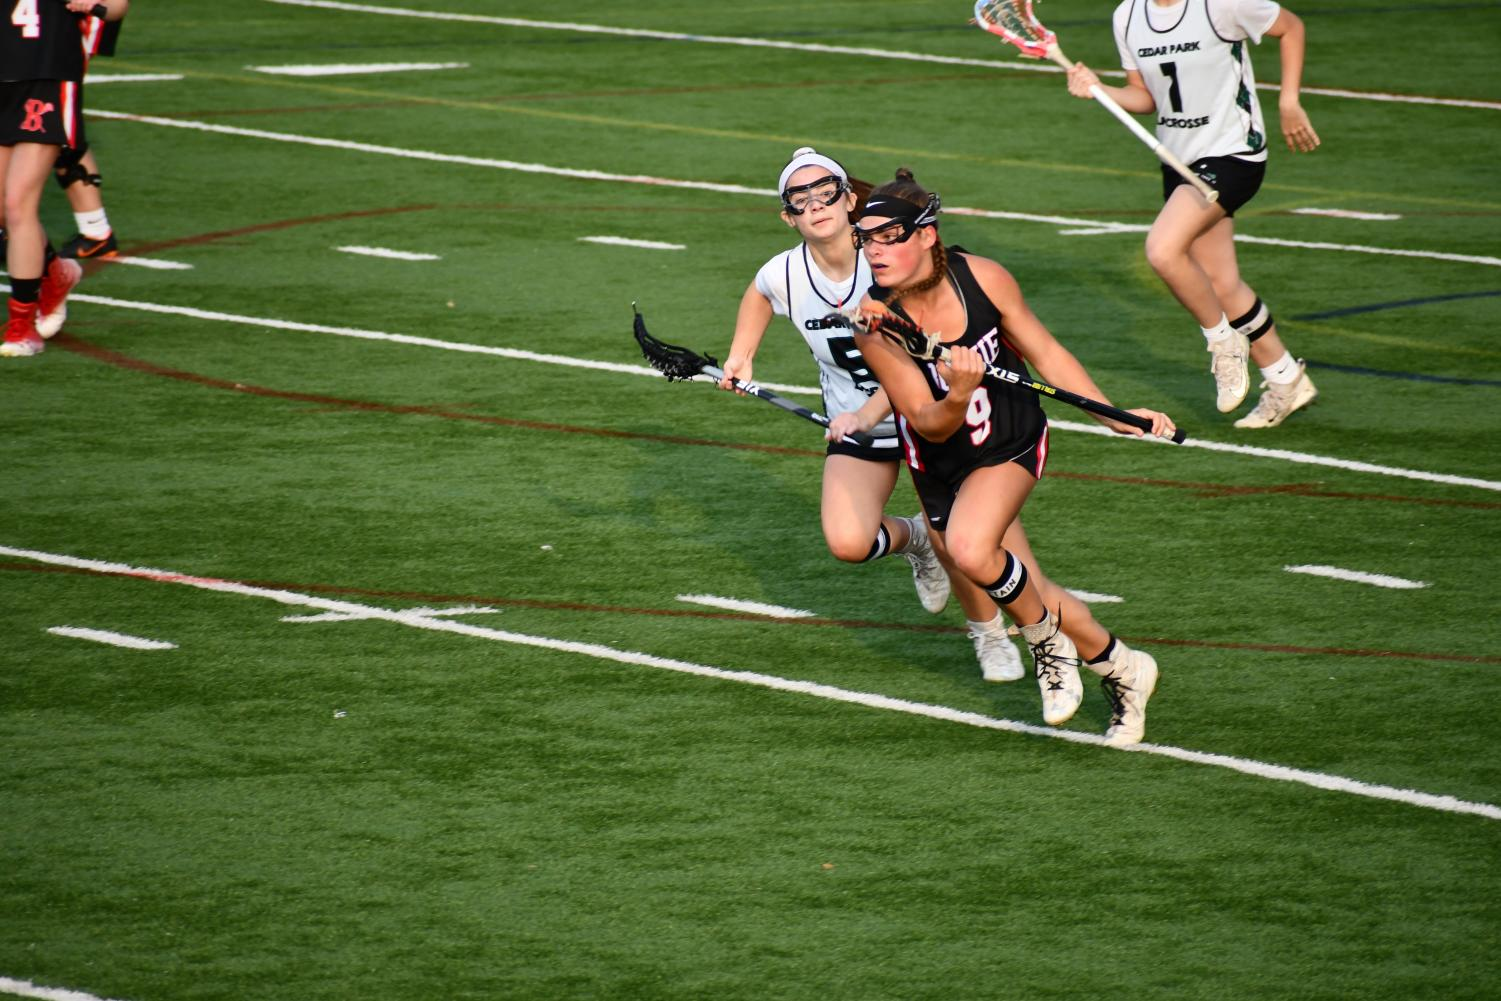 ON THE MOVE: Junior Sydney Heim sprints down midfield towards the goal. Heim was awarded with All-American and All-State honors this season.